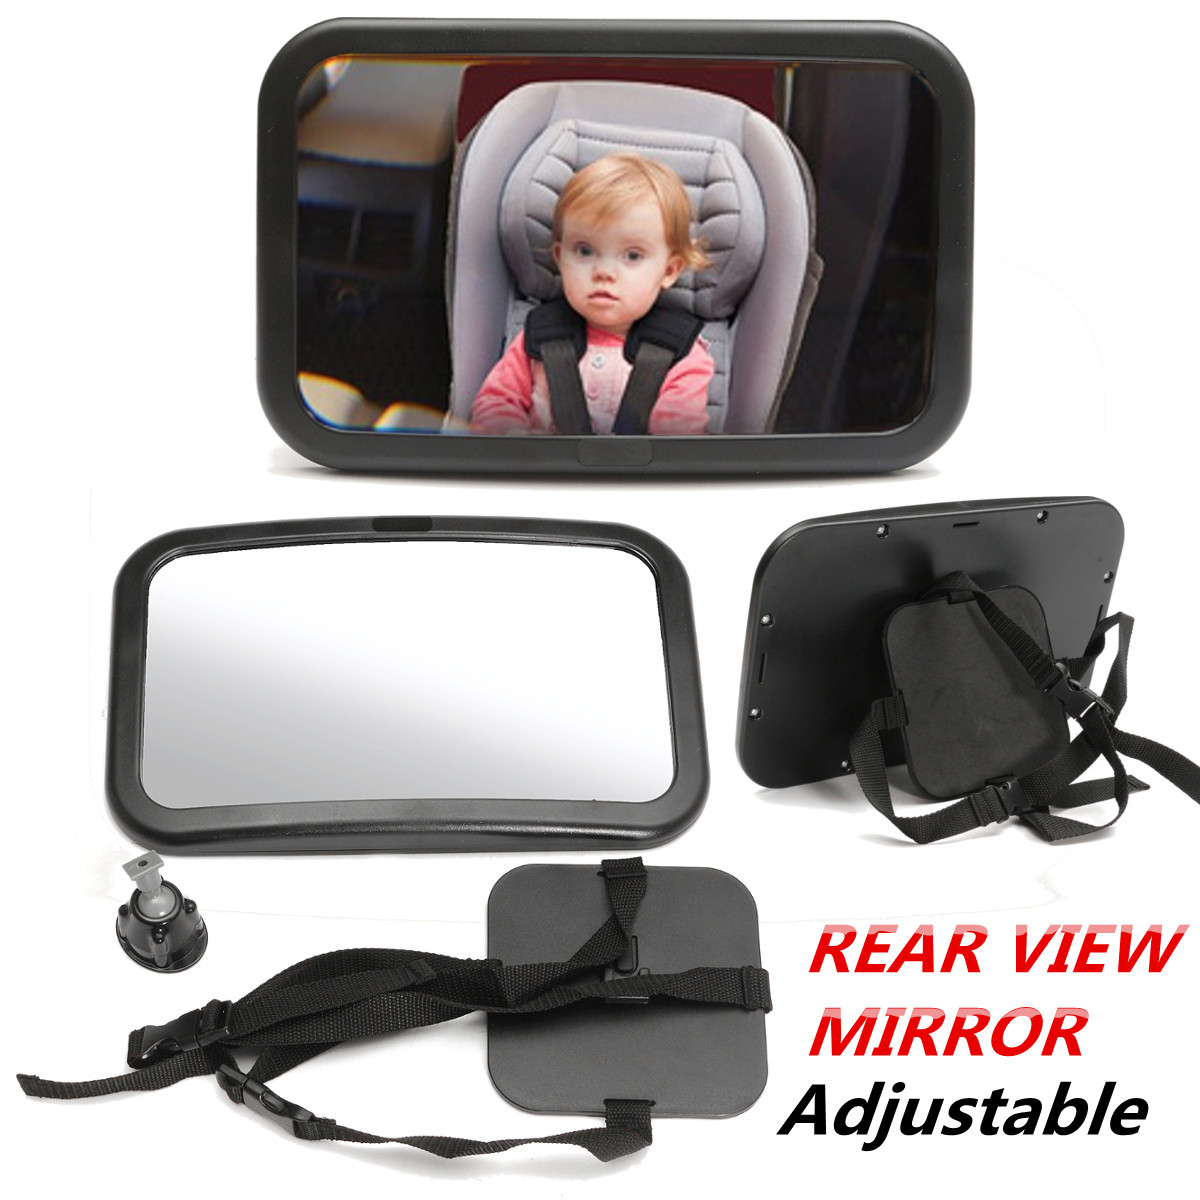 Adjustable Wide Car Seat Rear View Mirror Baby Infant Child Children Car Auto SUV Safety Security Headrest... by MATCC